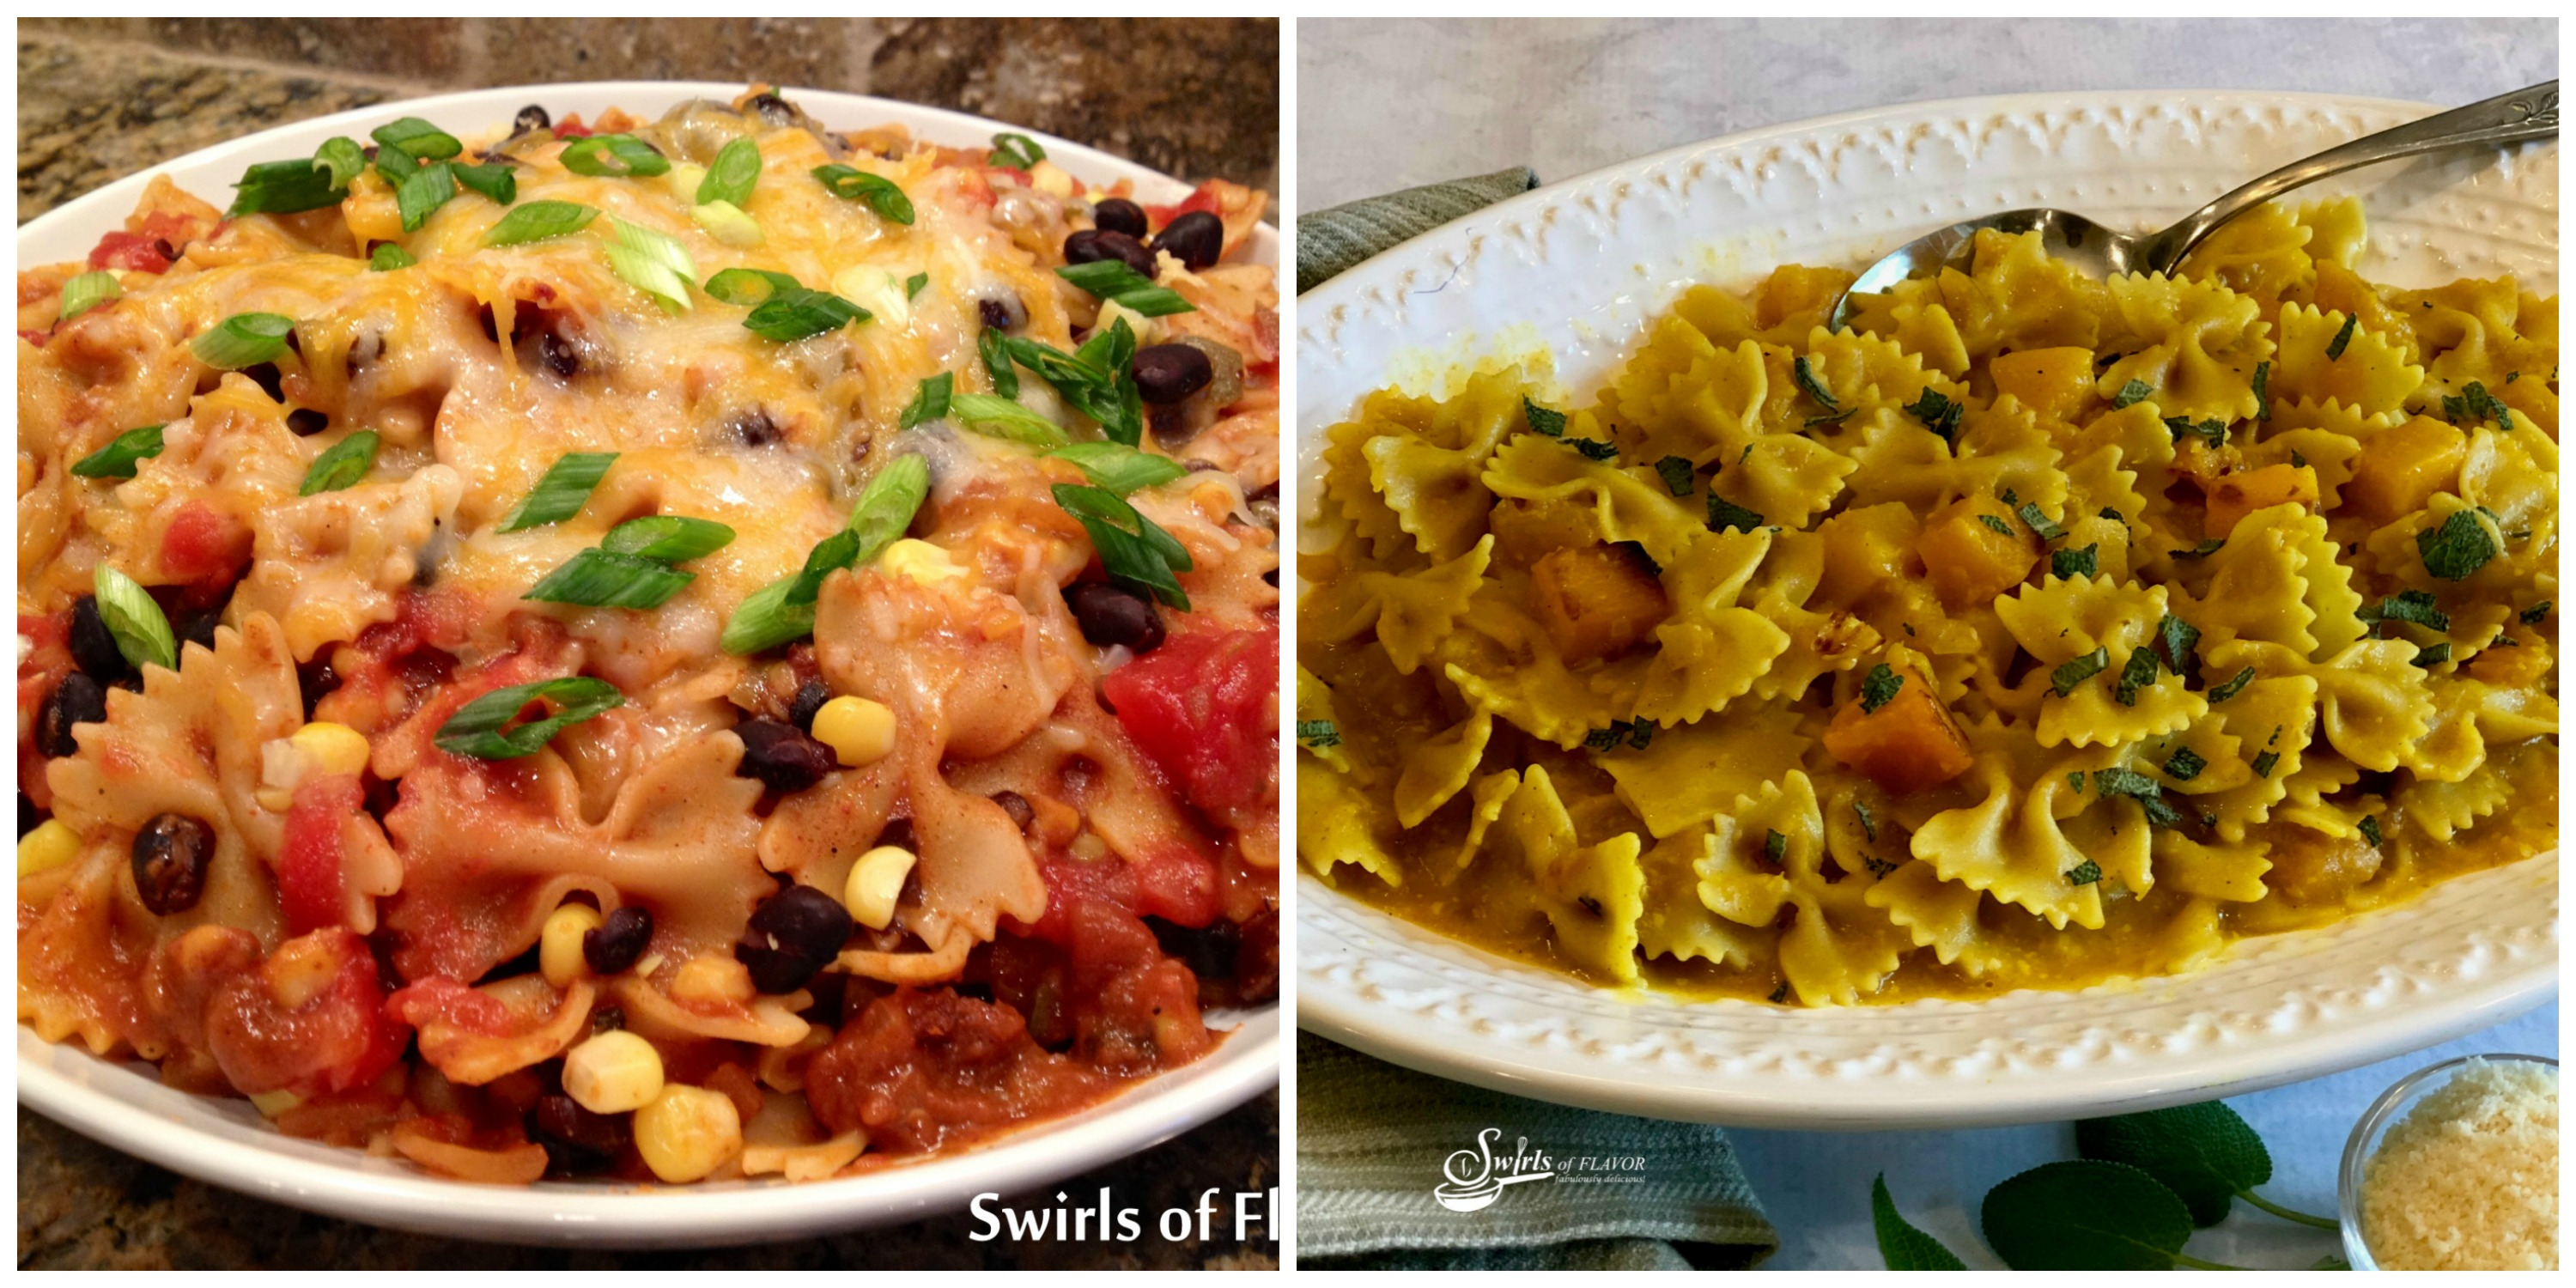 Mexicali Pasta and Butternut Squash Pasta